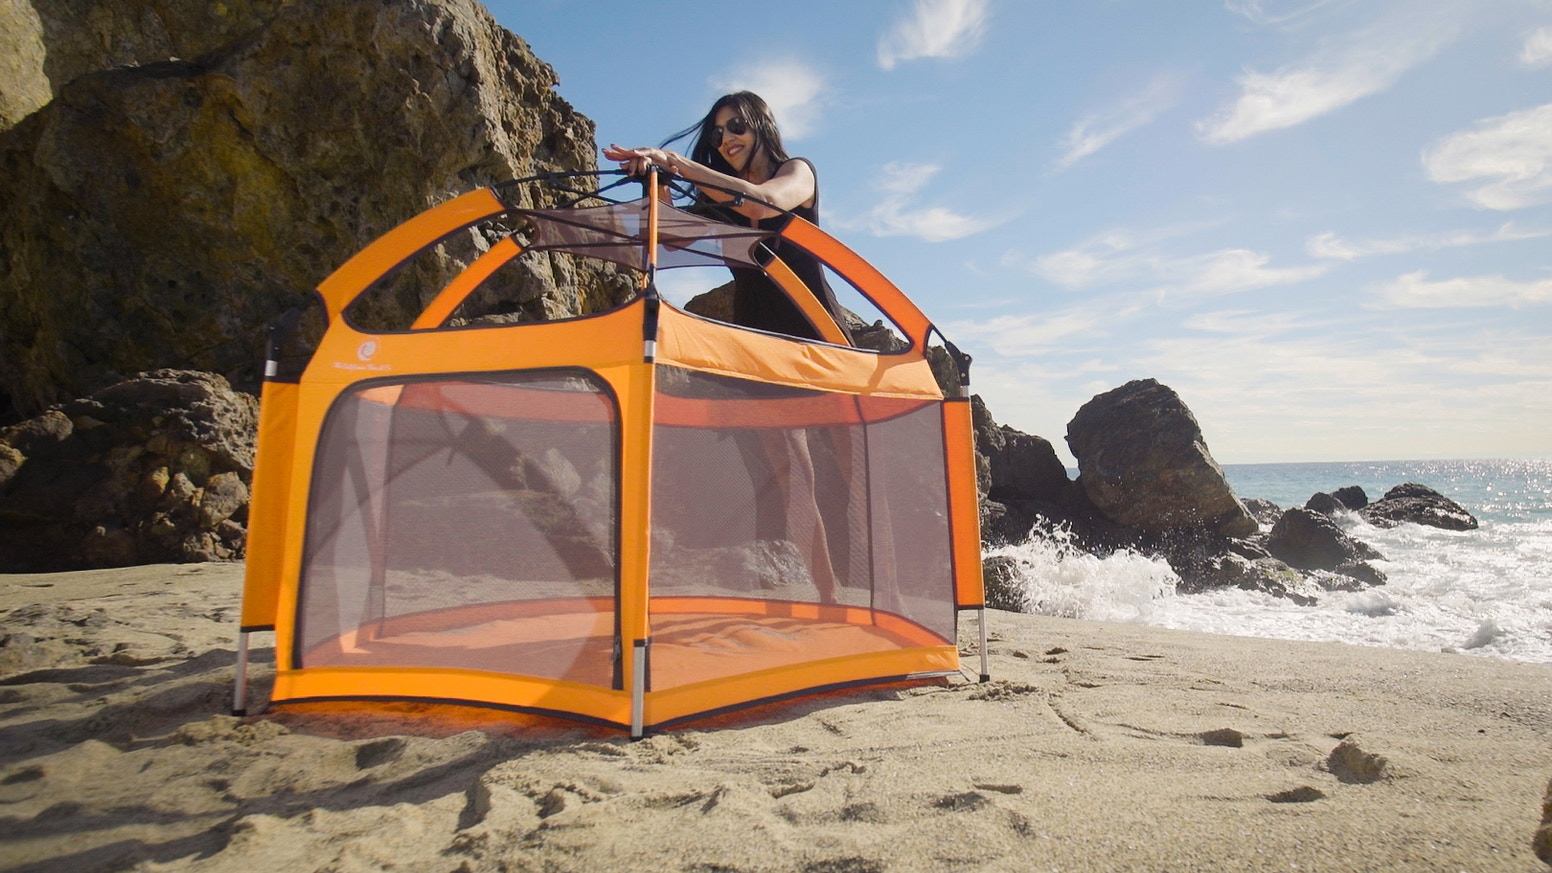 Pop 'N Go - The World's Best Kids Playpen is the top crowdfunding project launched today. Pop 'N Go - The World's Best Kids Playpen raised over $395479 from 2915 backers. Other top projects include L'Arbre aux Hérons / The Herons' Tree, Coho Folding Kayak - Unfold Your Next Adventure, Sorcerer City Board Game...